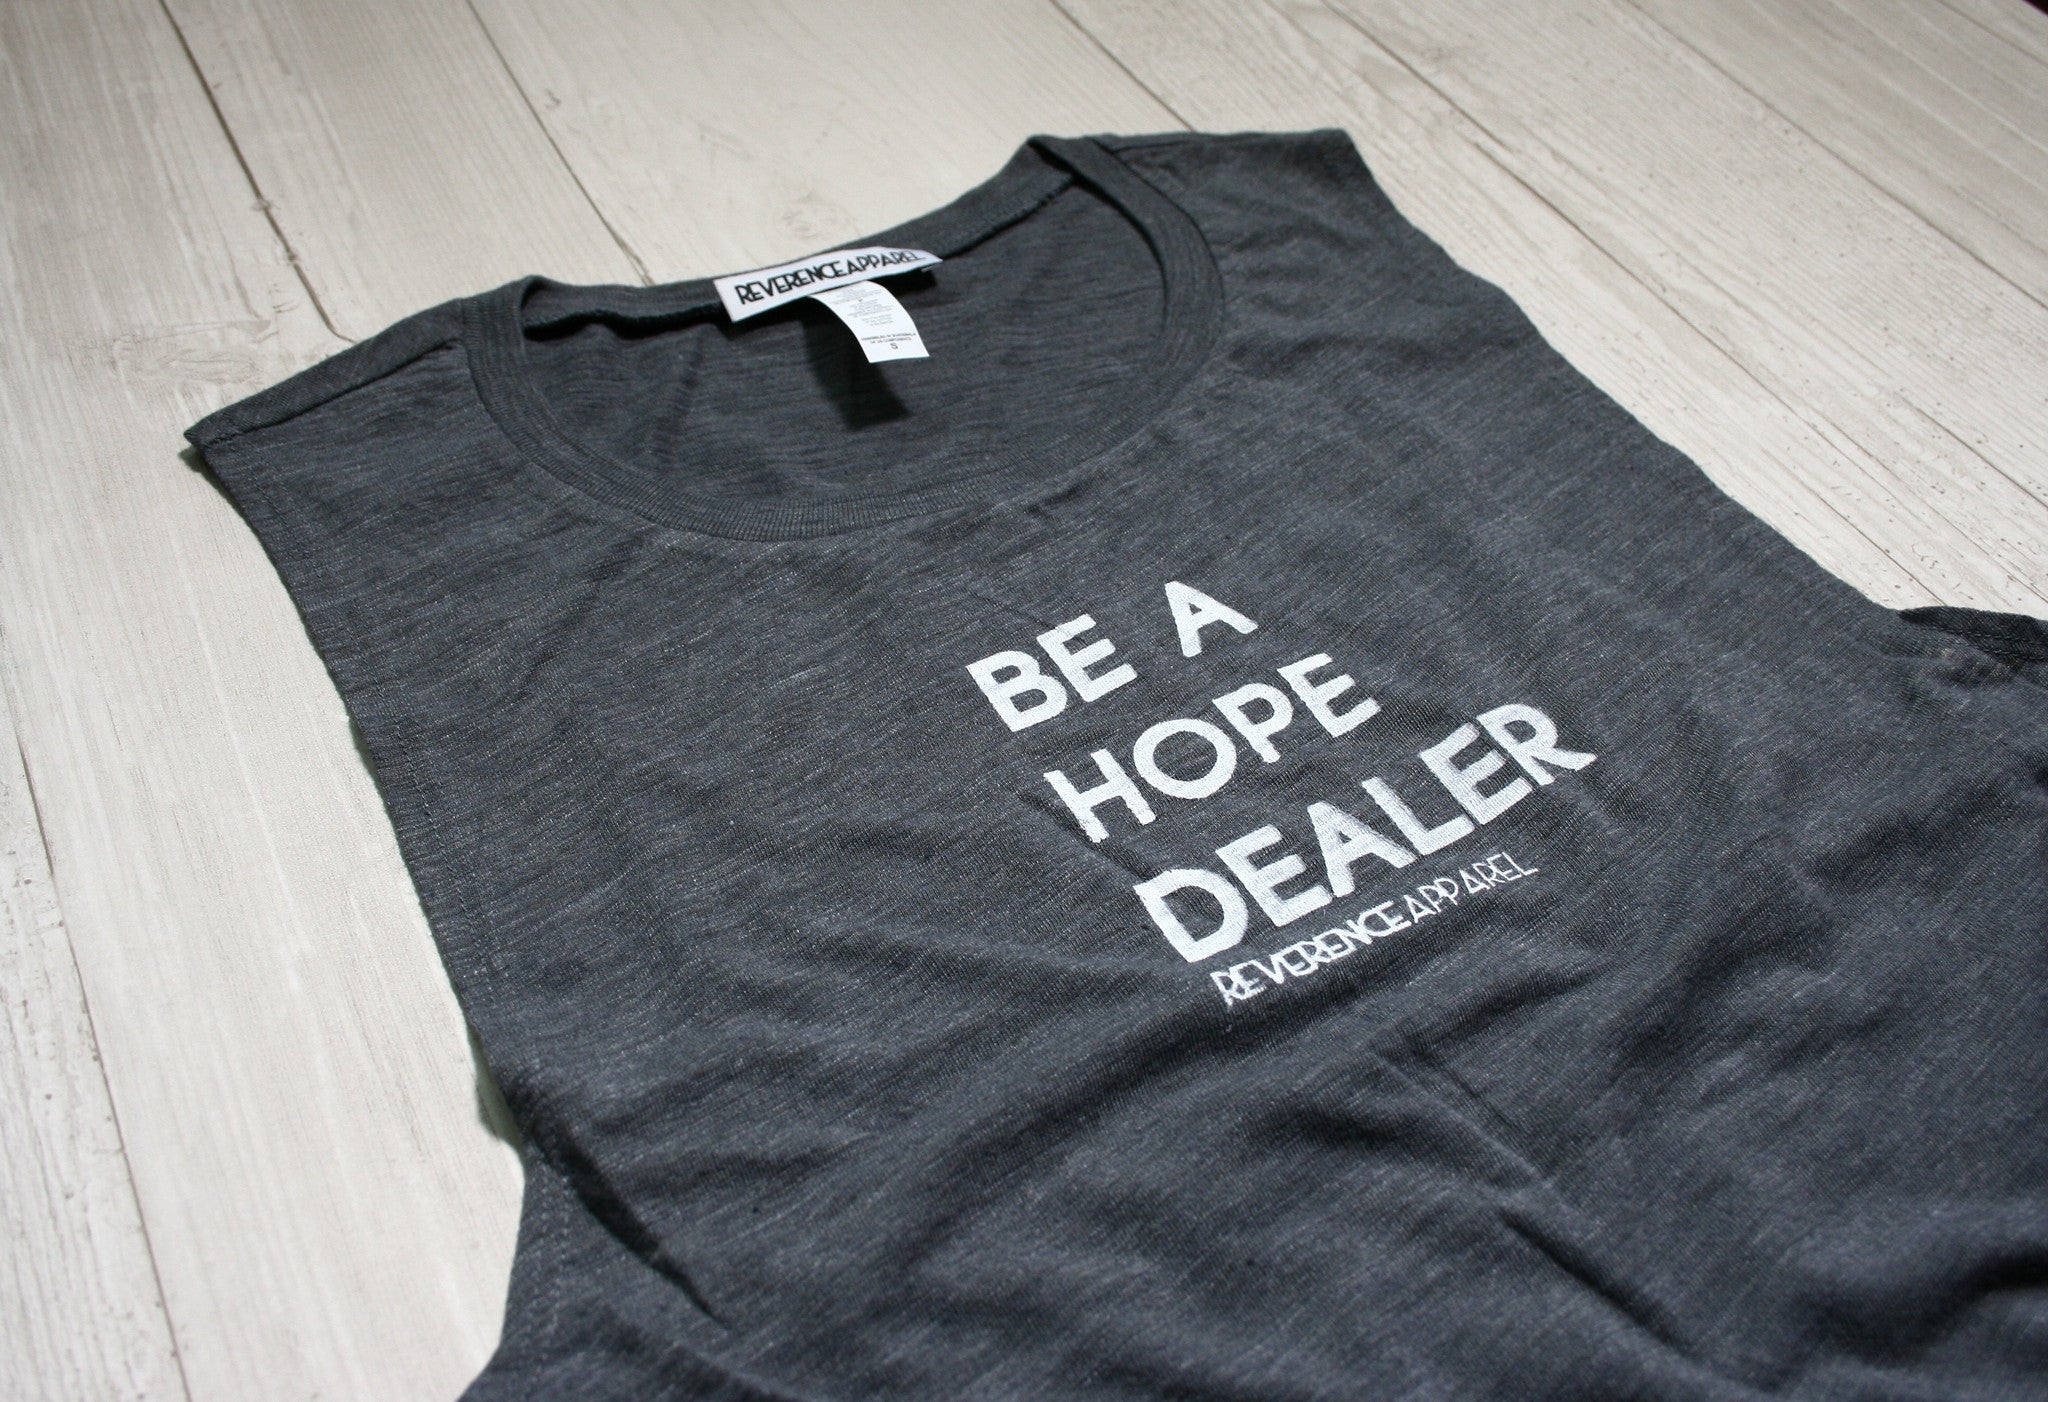 BE A HOPE DEALER SLEEVELESS MUSCLE TANK, , Tank, Reverence Apparel, Reverence Apparel   - 2